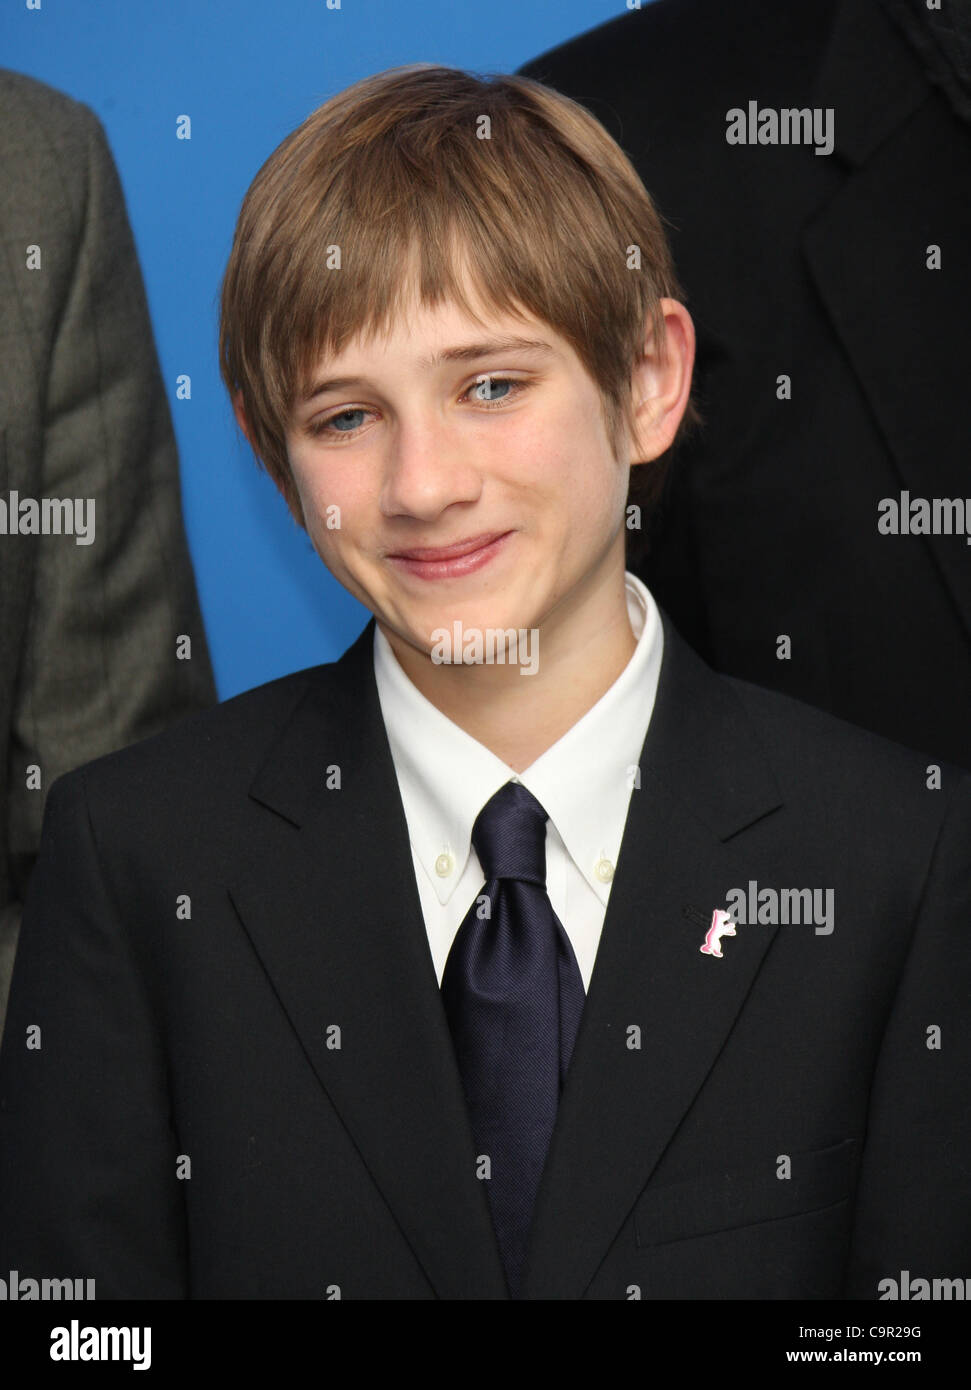 THOMAS HORN EXTREMELY LOUD & INCREDIBLY CLOSE PHOTOCALL BERLIN FILM FESTIVAL 2012 THE GRAND HYATT POTSDAMER - Stock Image